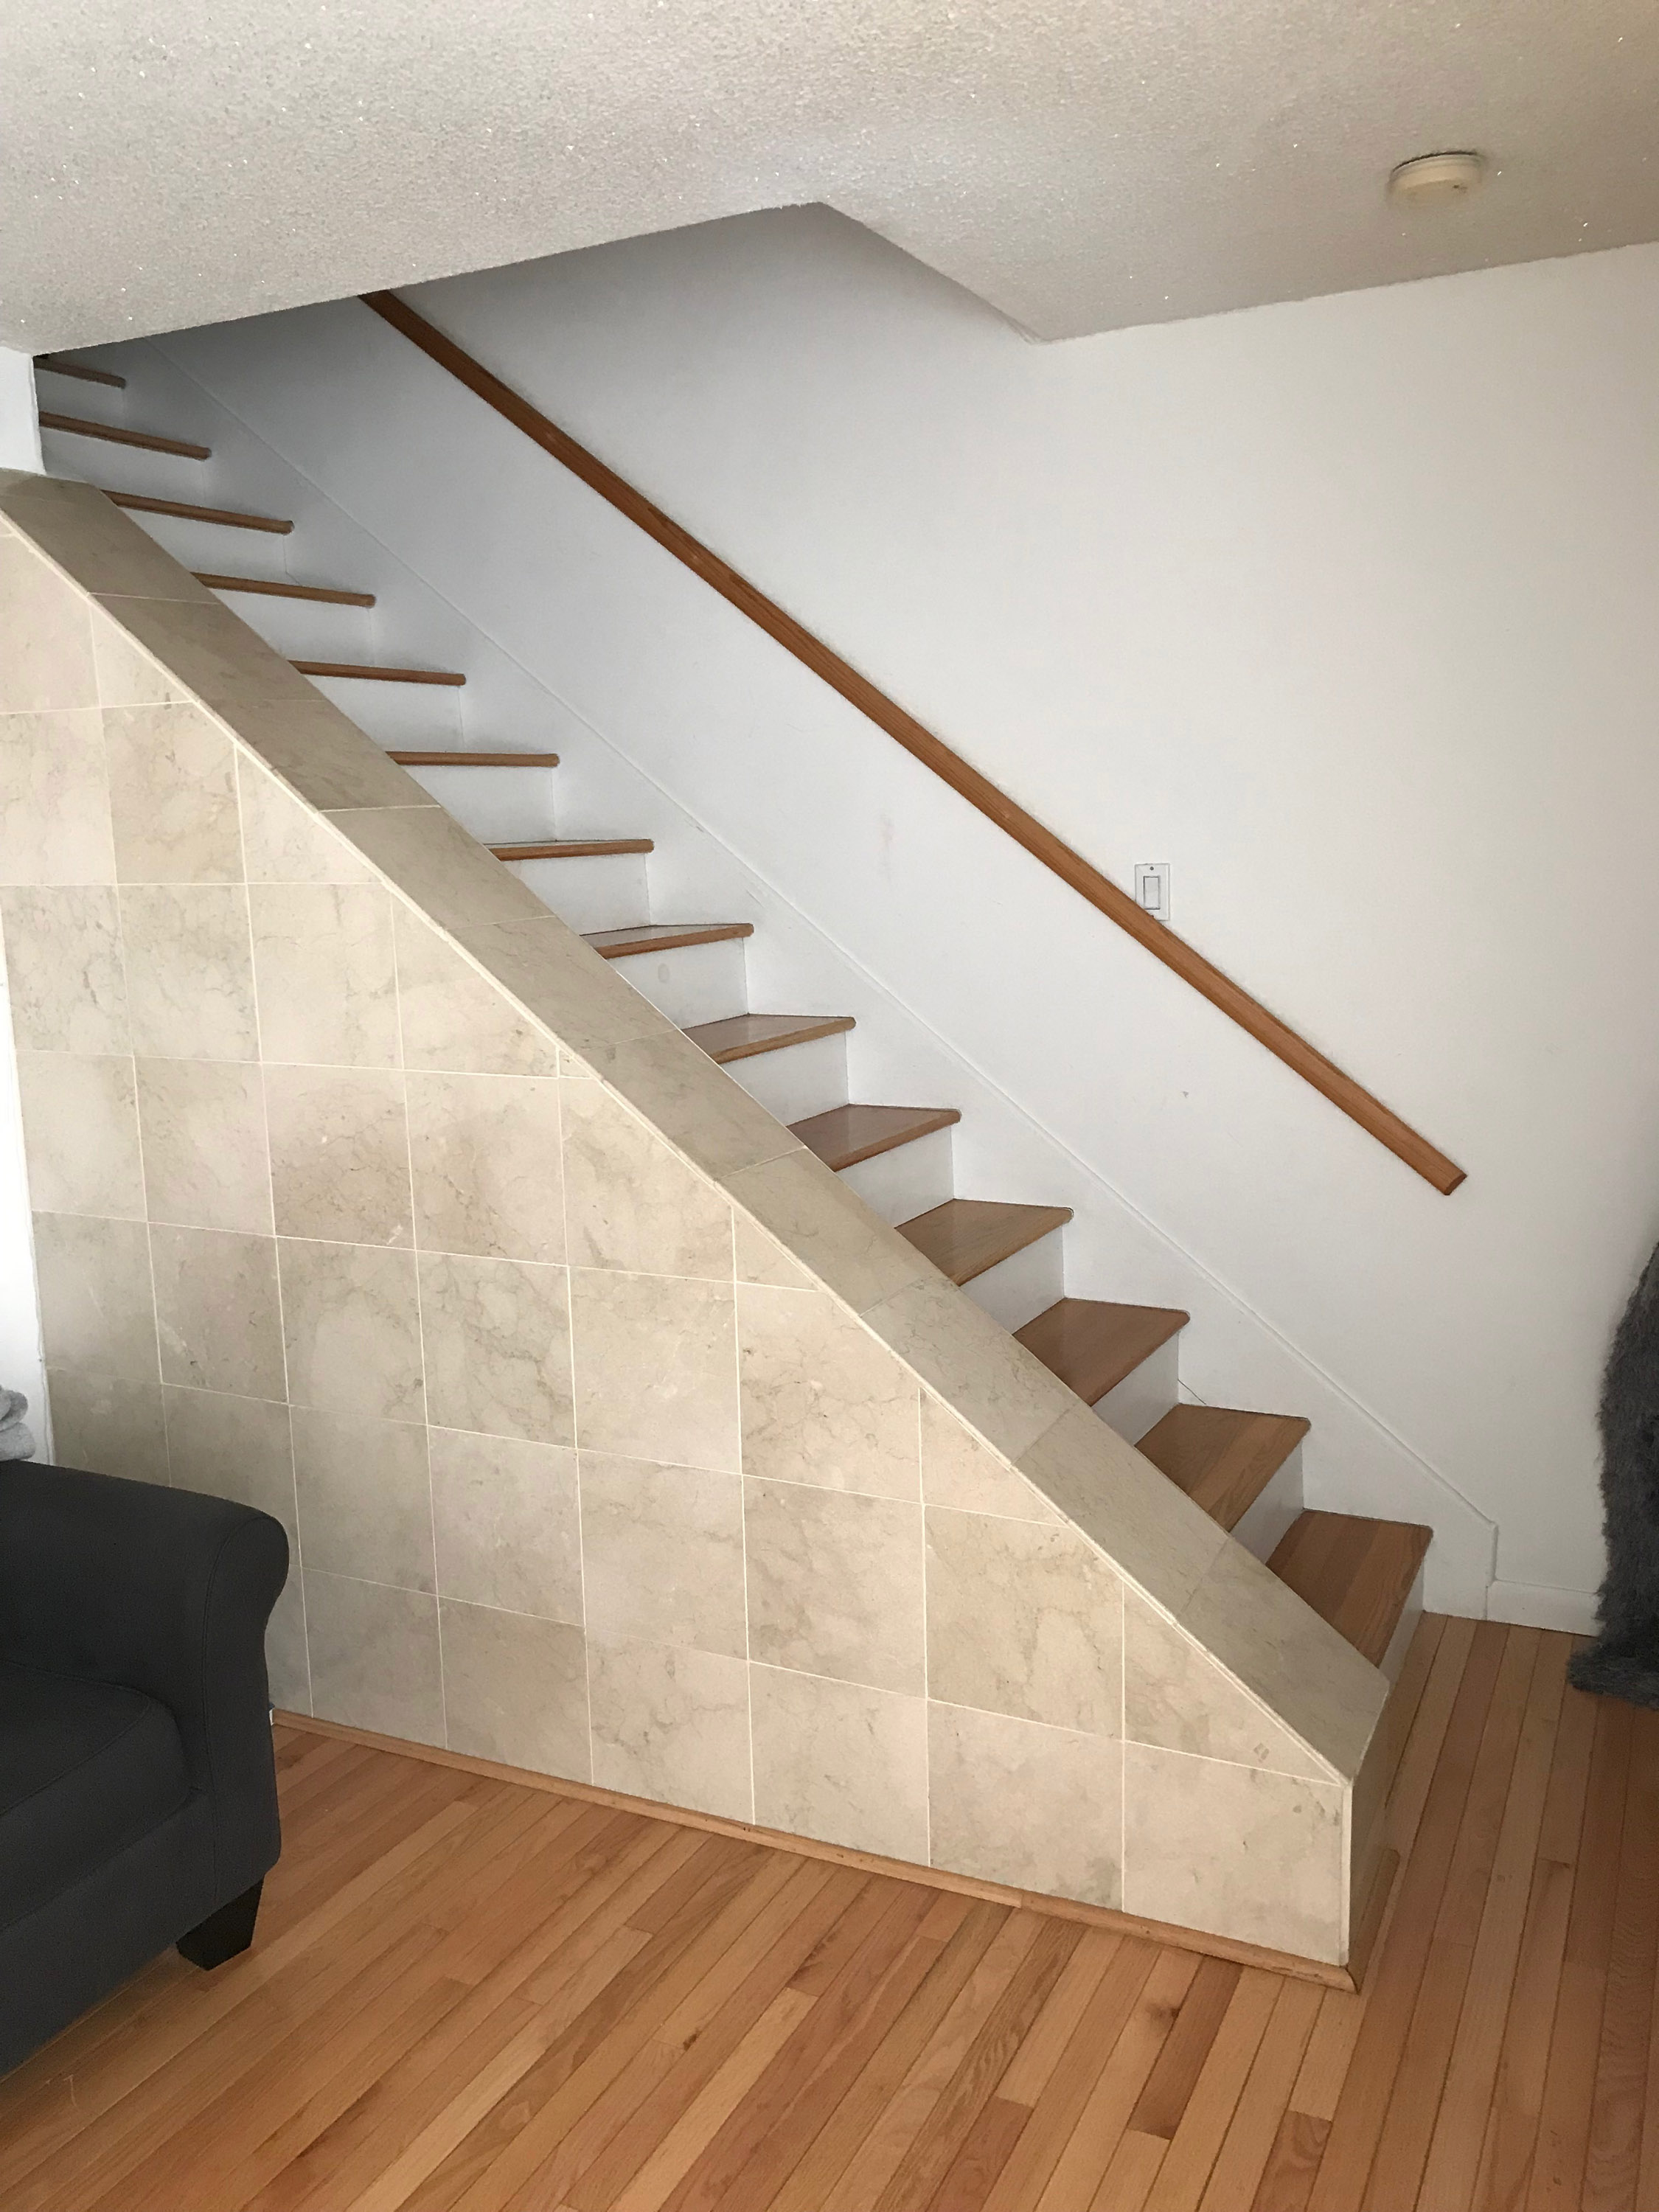 Stair Railing Ideas For This Odd Staircase Img 4877 Jpg